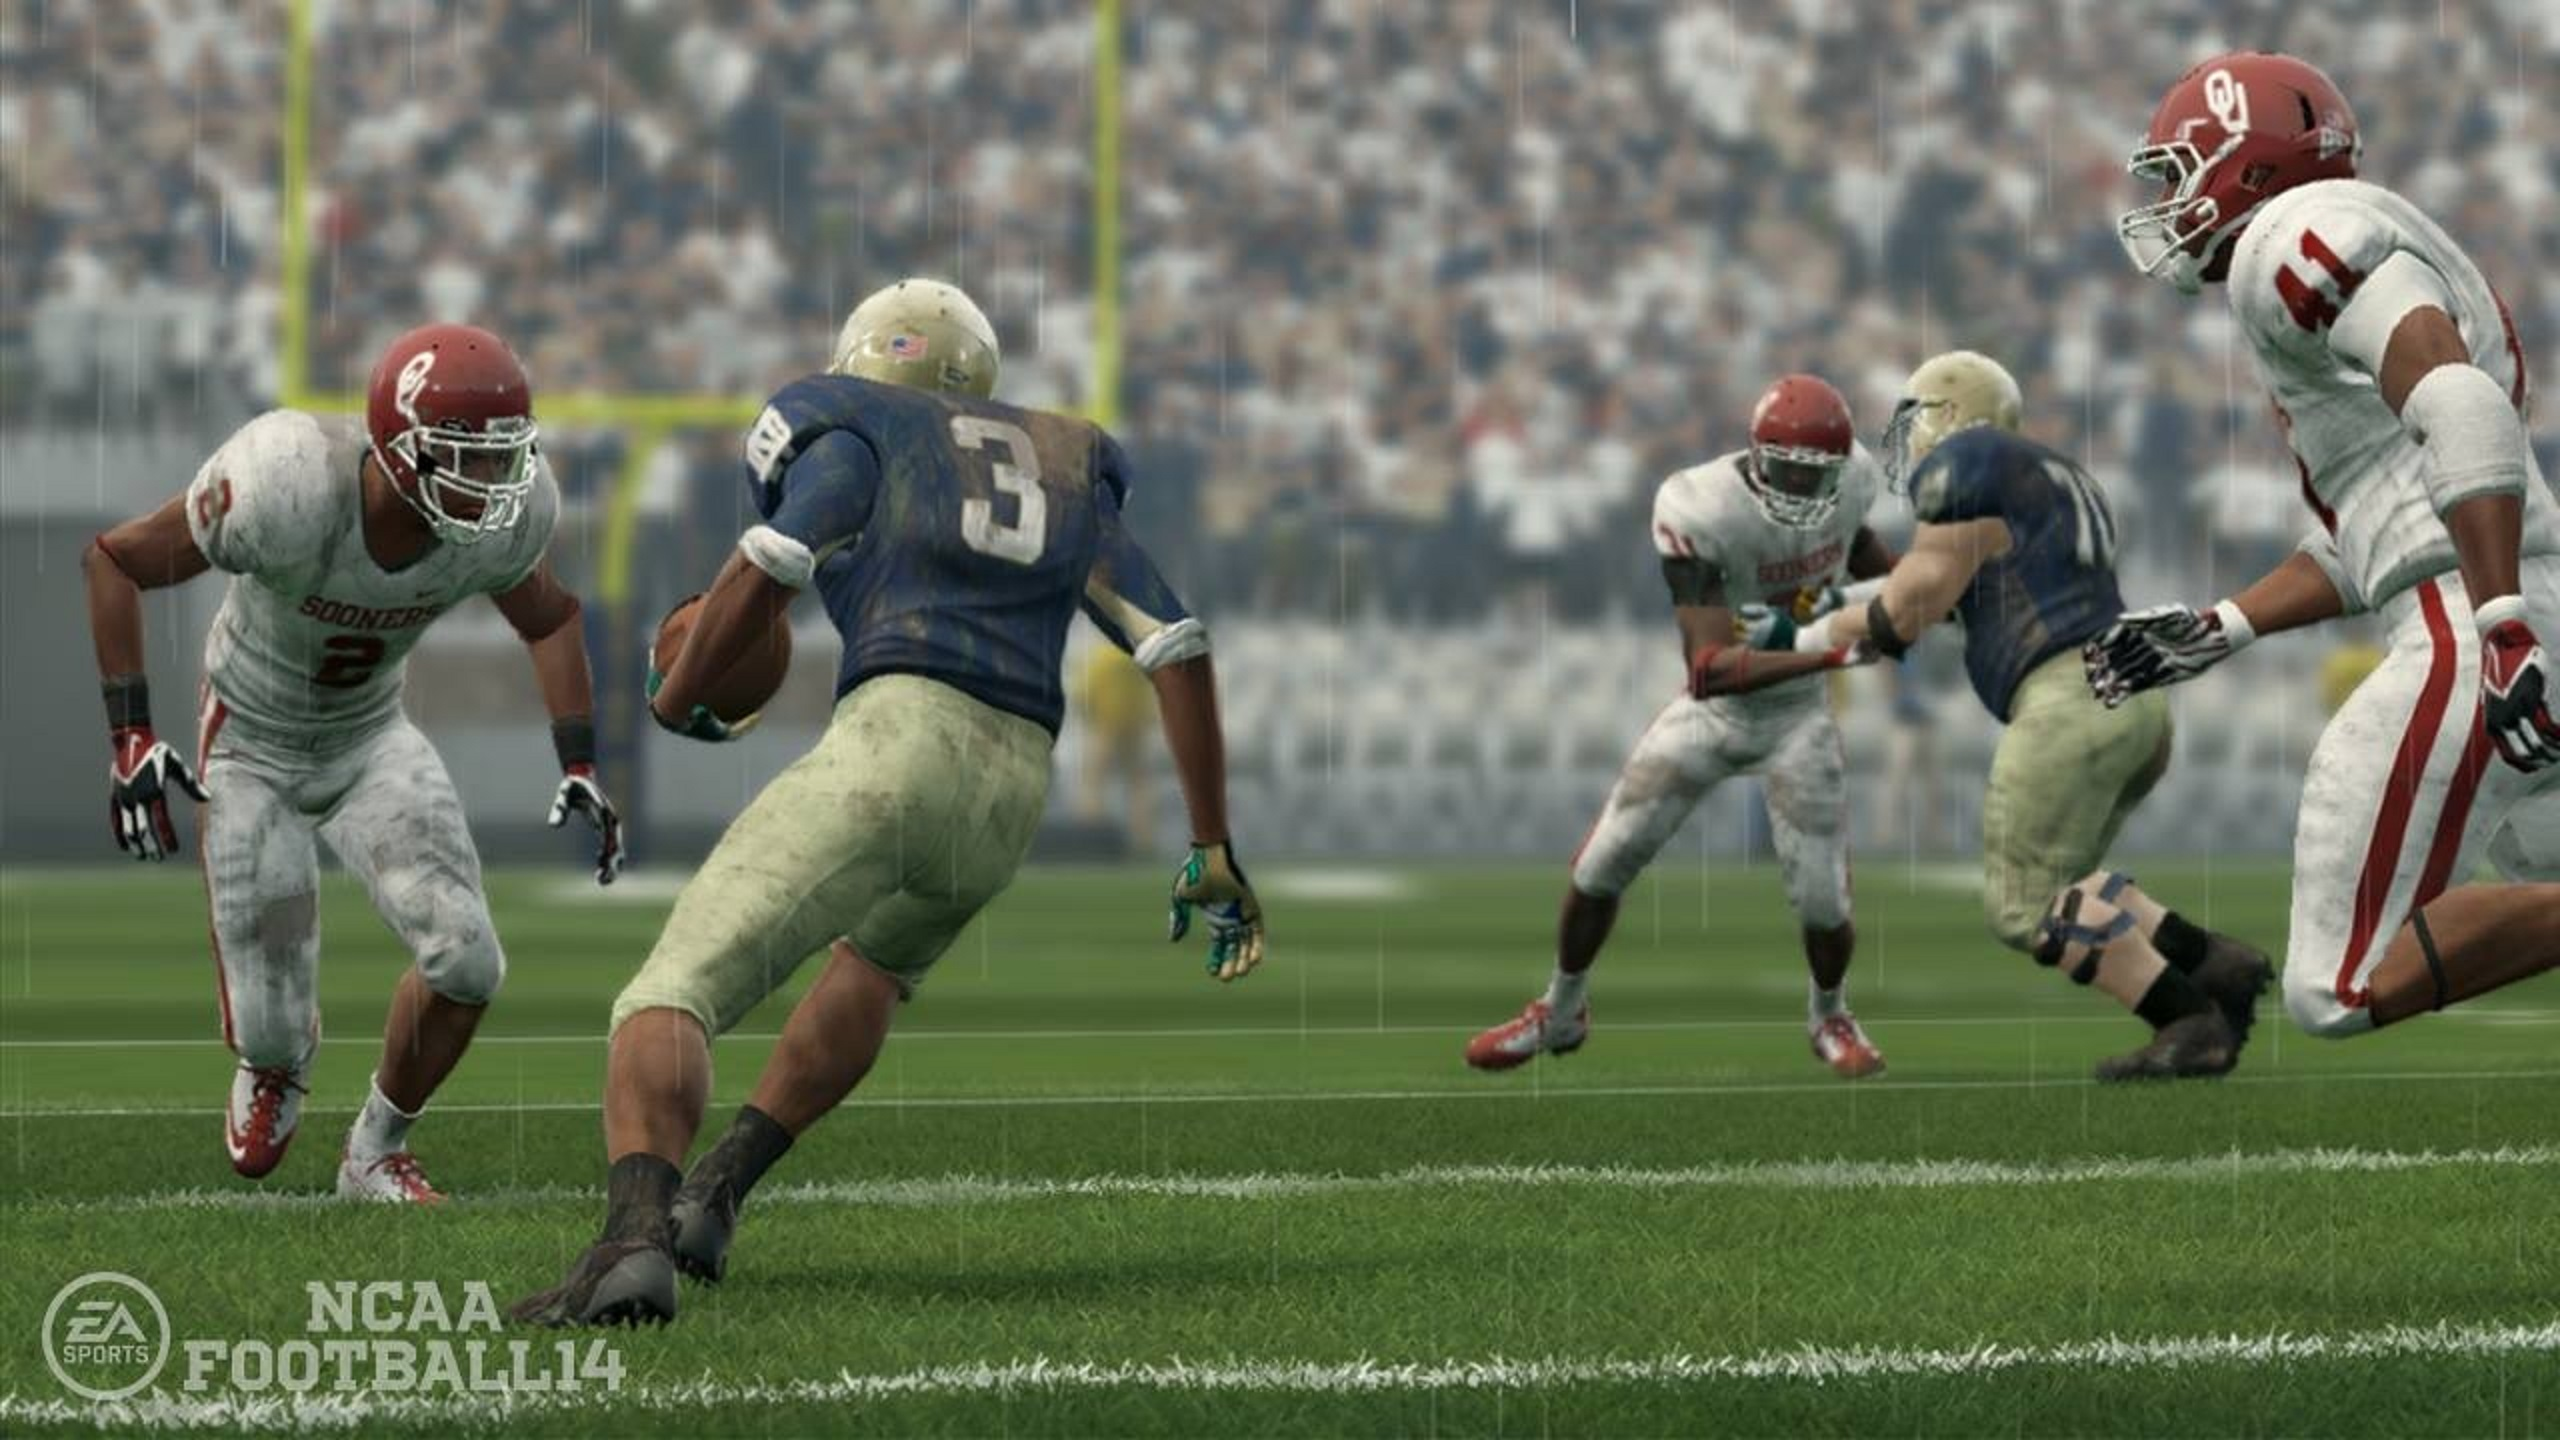 Notre Dame Shuns EA's College Football Comeback Until Players Get Paid